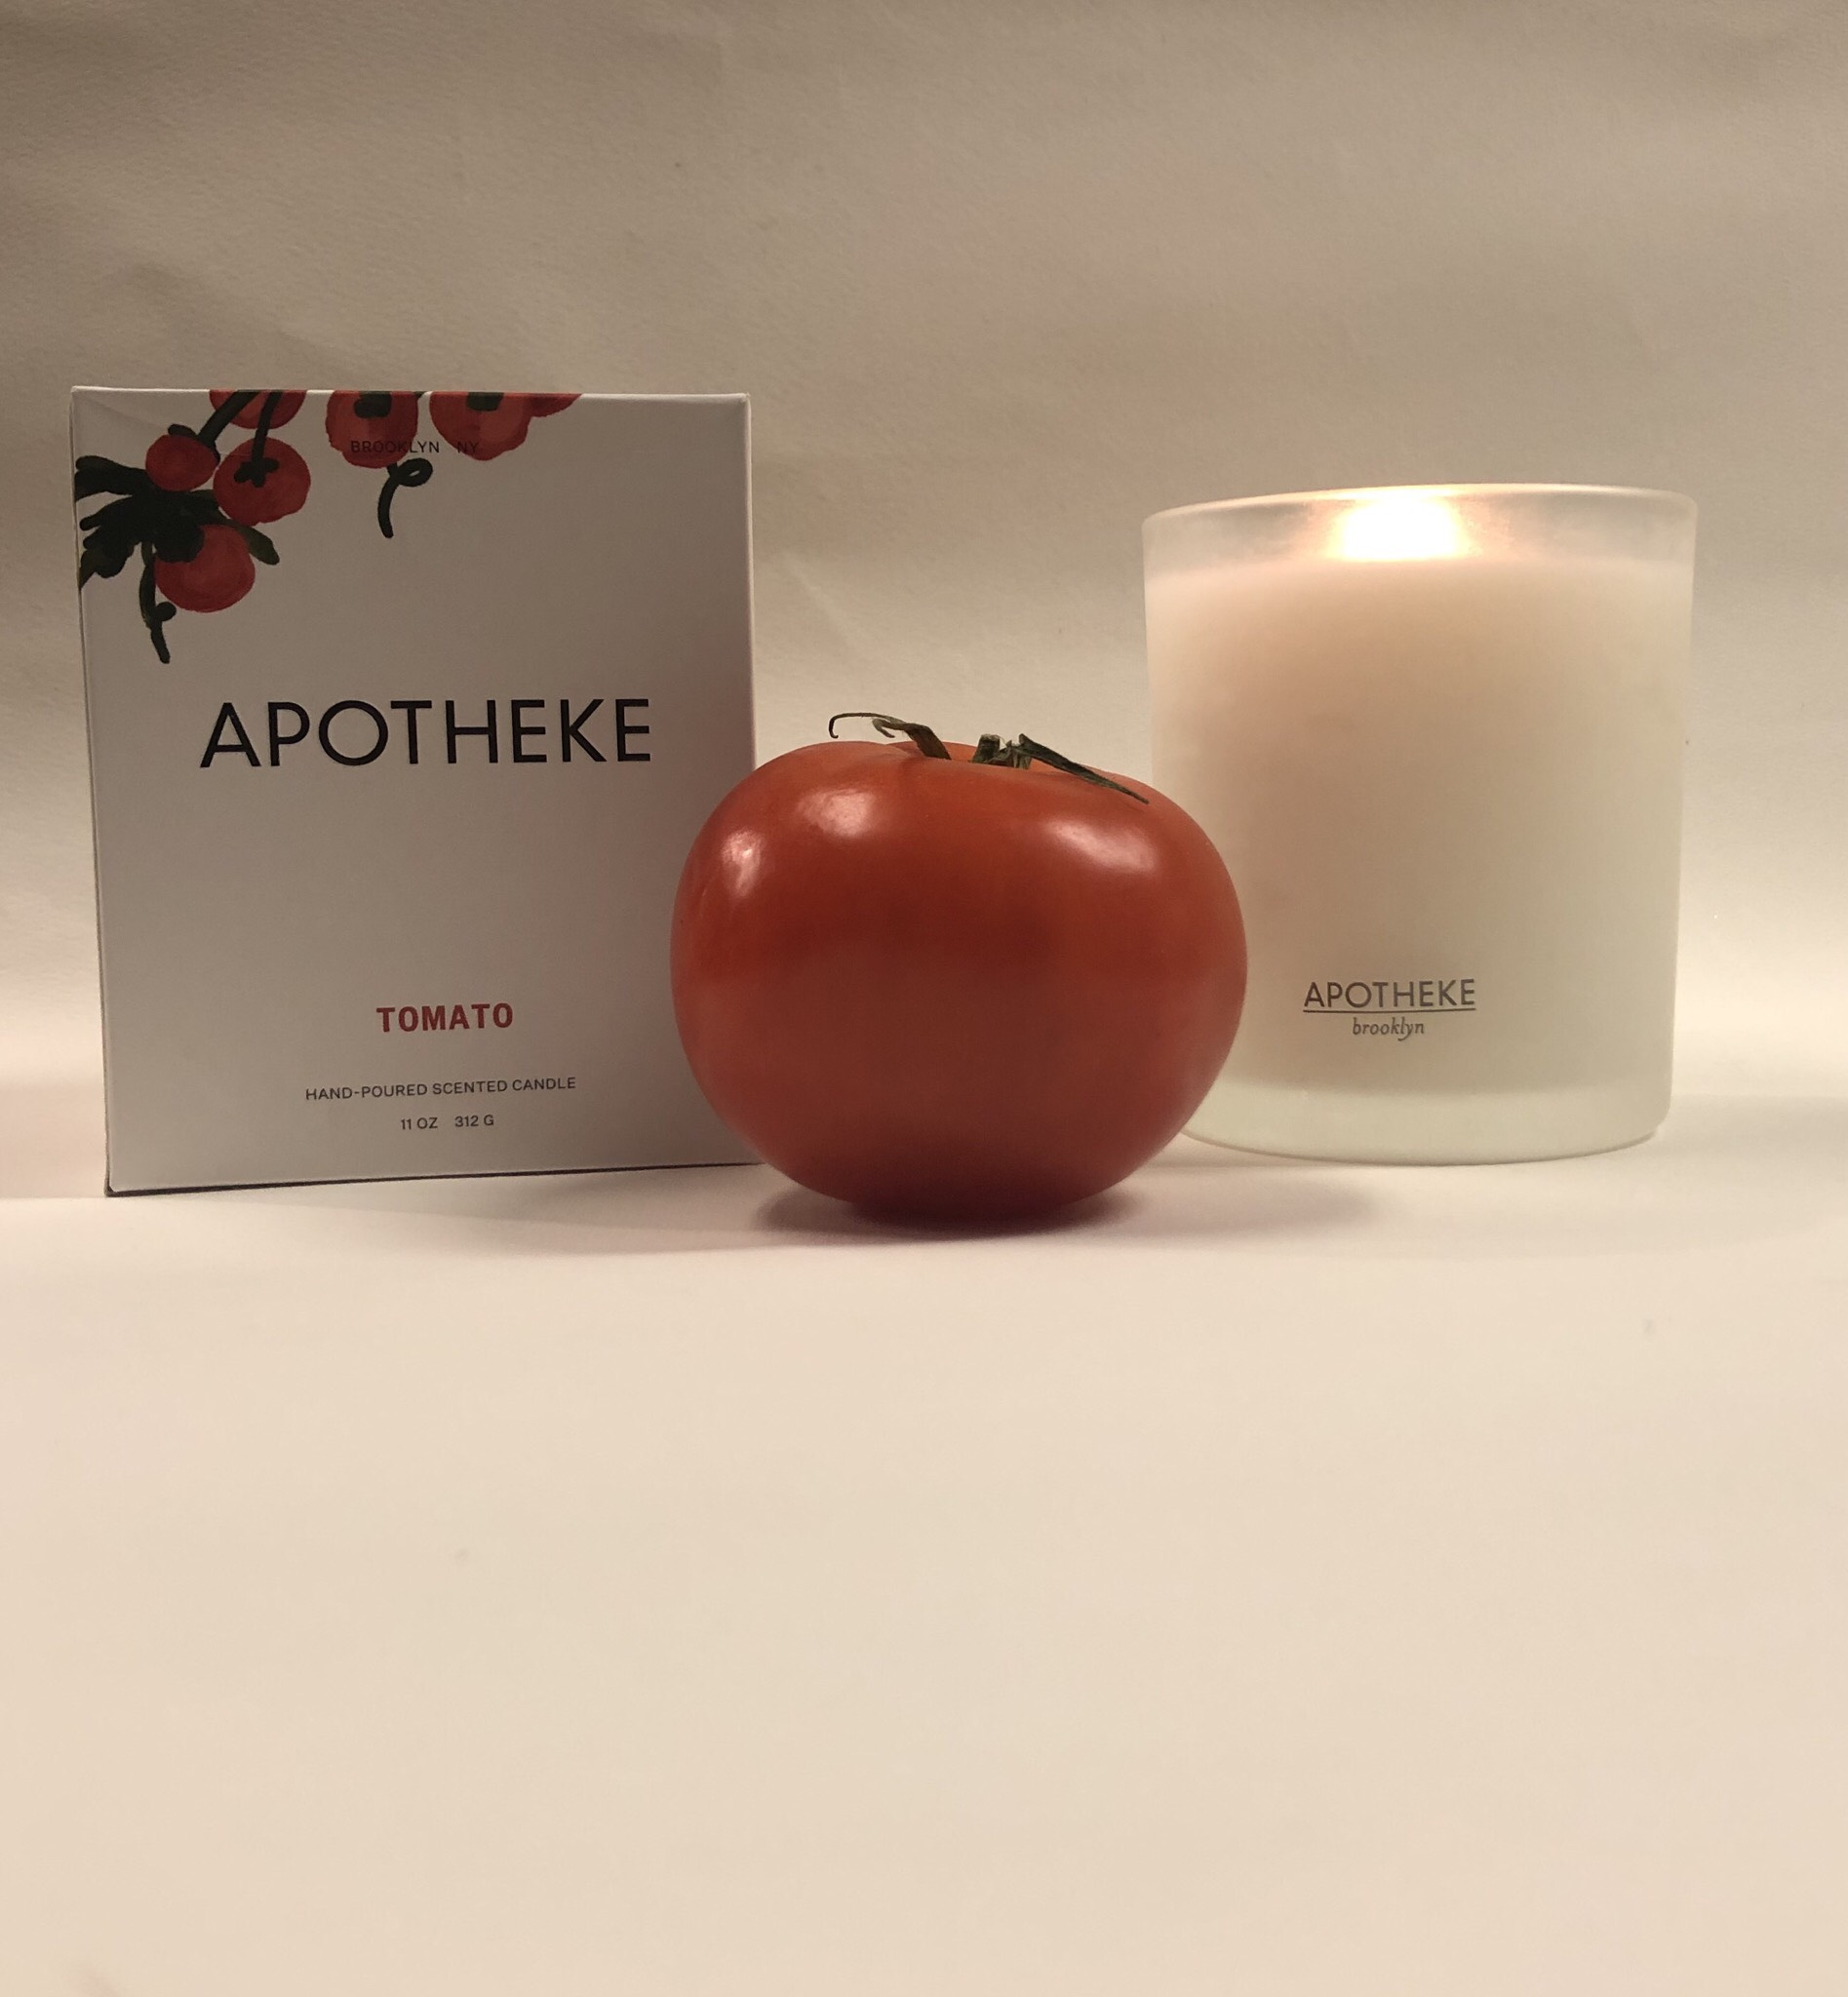 Tomato-scented candle by Apotheke. Relaxing earthy and basil fragrance.